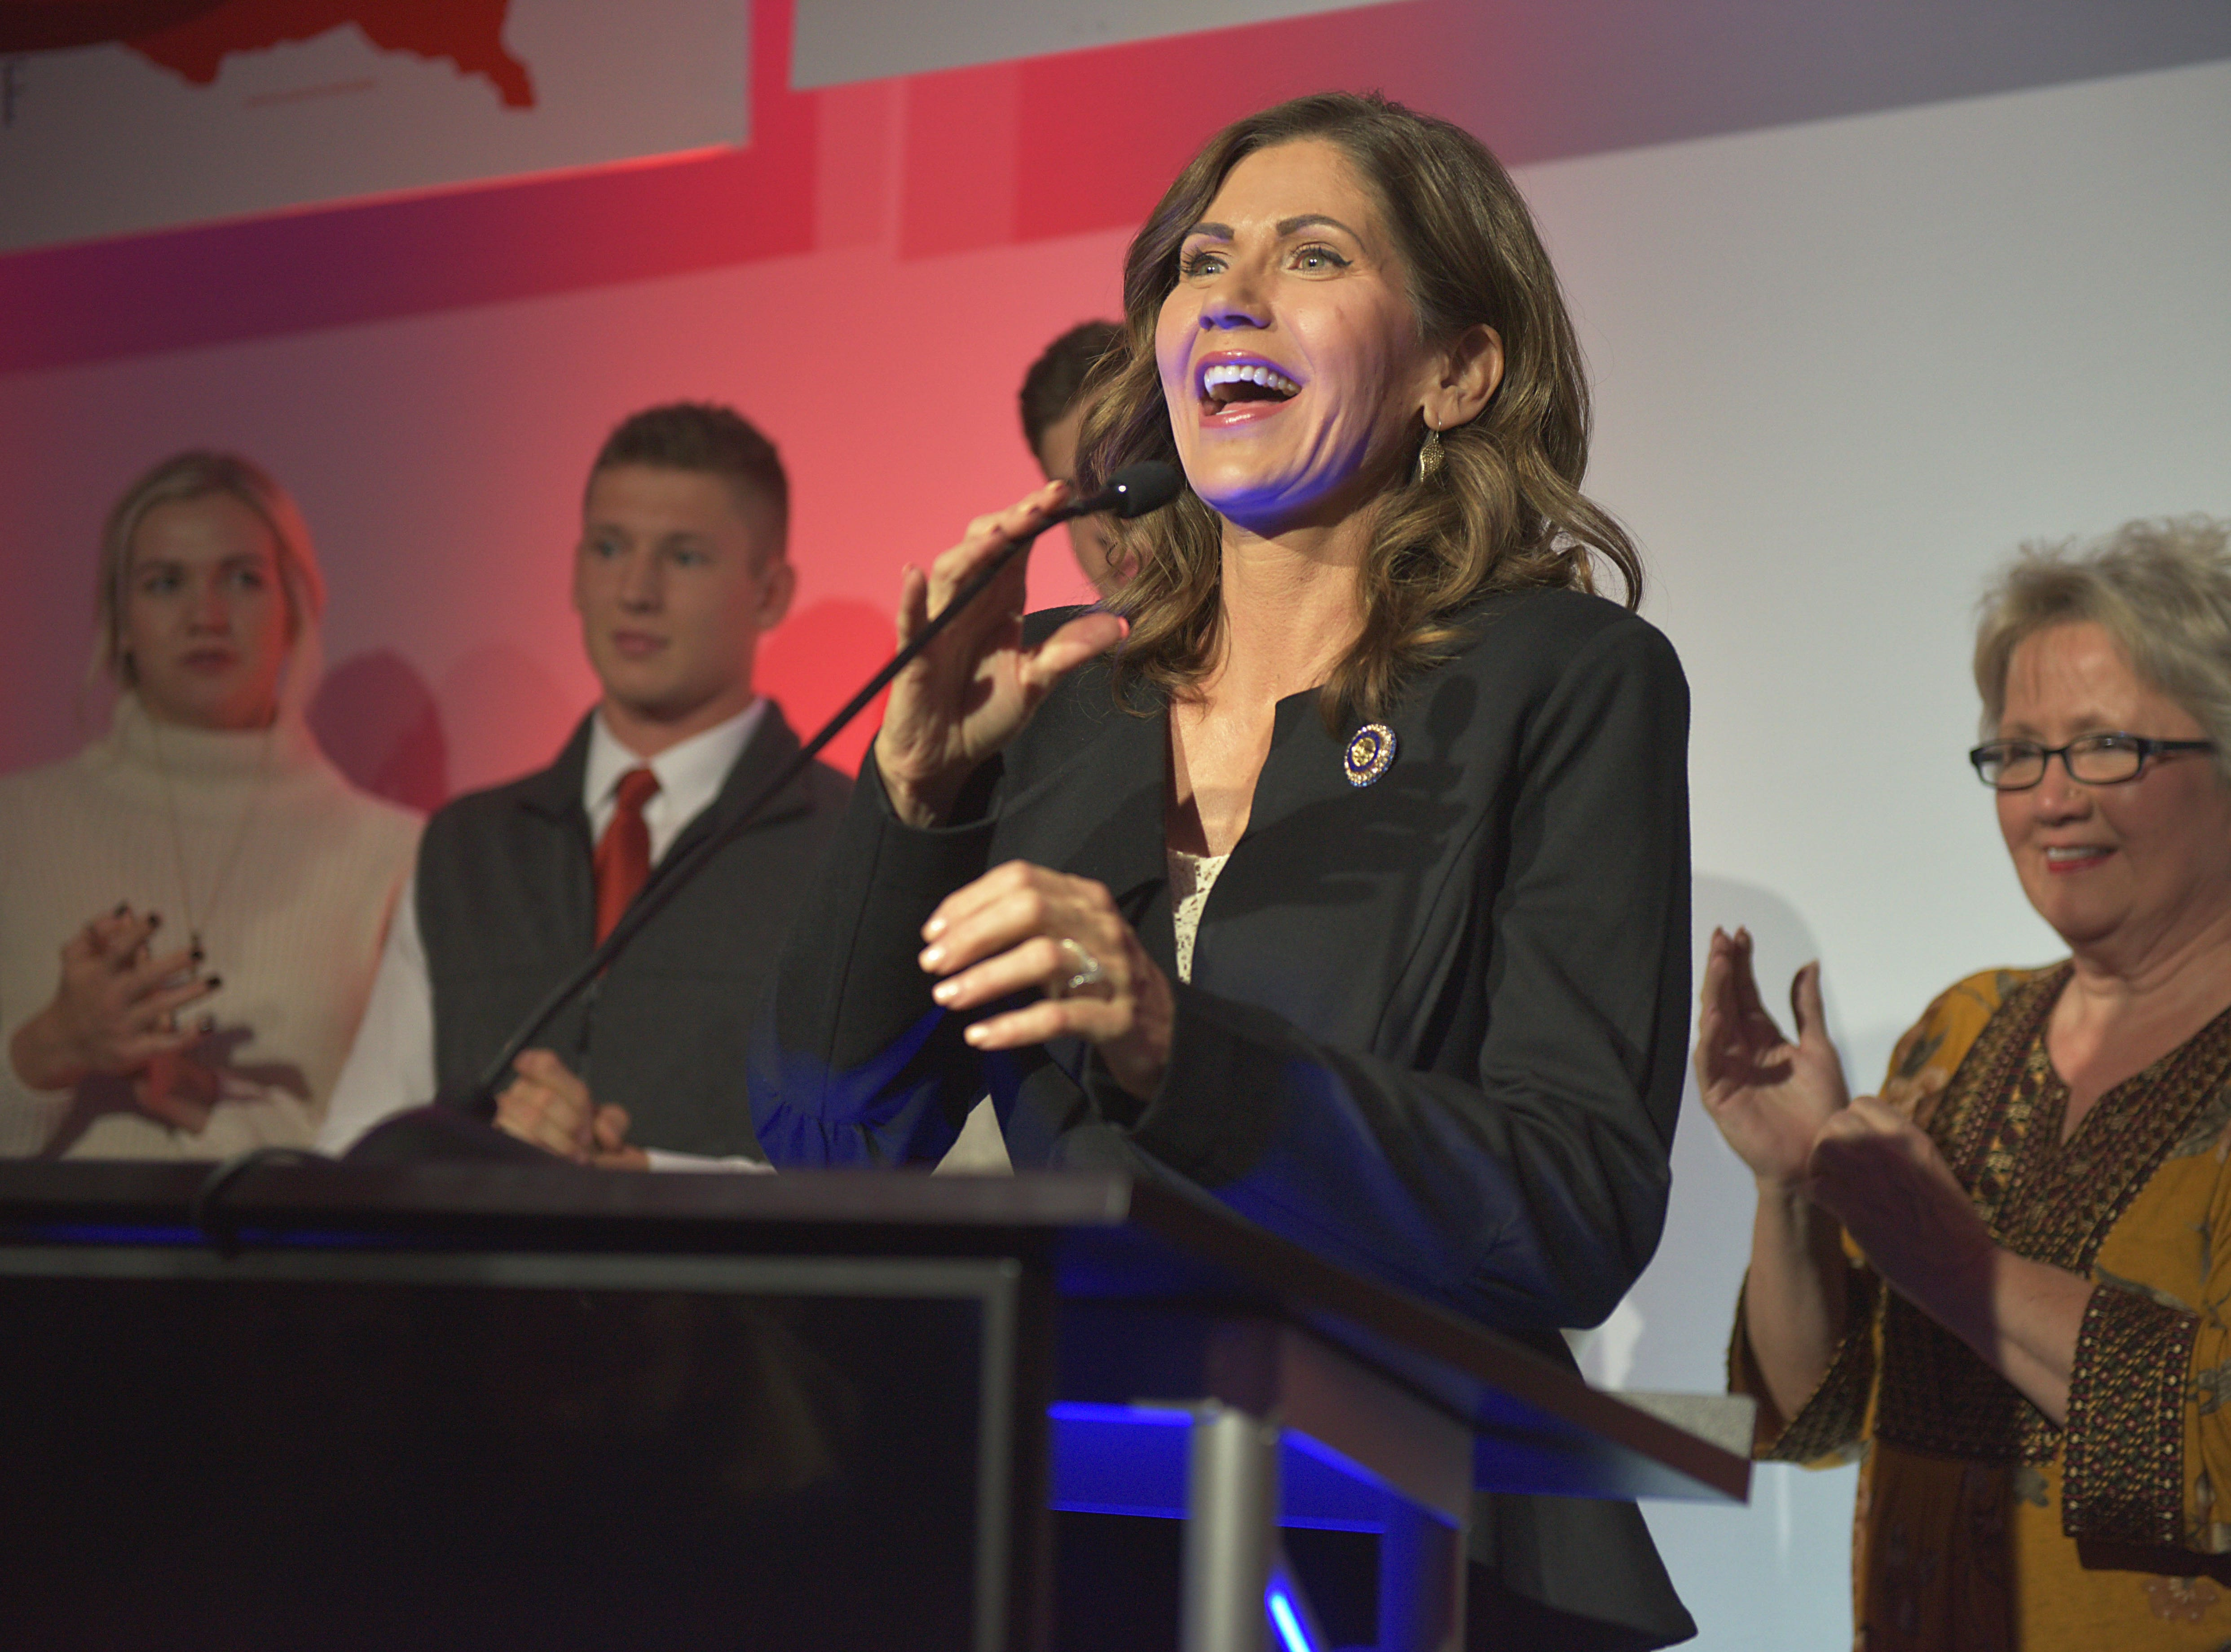 Kristi Noem address supporters while she makes her acceptance speech after being announced the new governor of South Dakota Tuesday, Nov. 6, at the Hilton Garden Inn in Sioux Falls. Noem made history by being the first female governor of South Dakota.